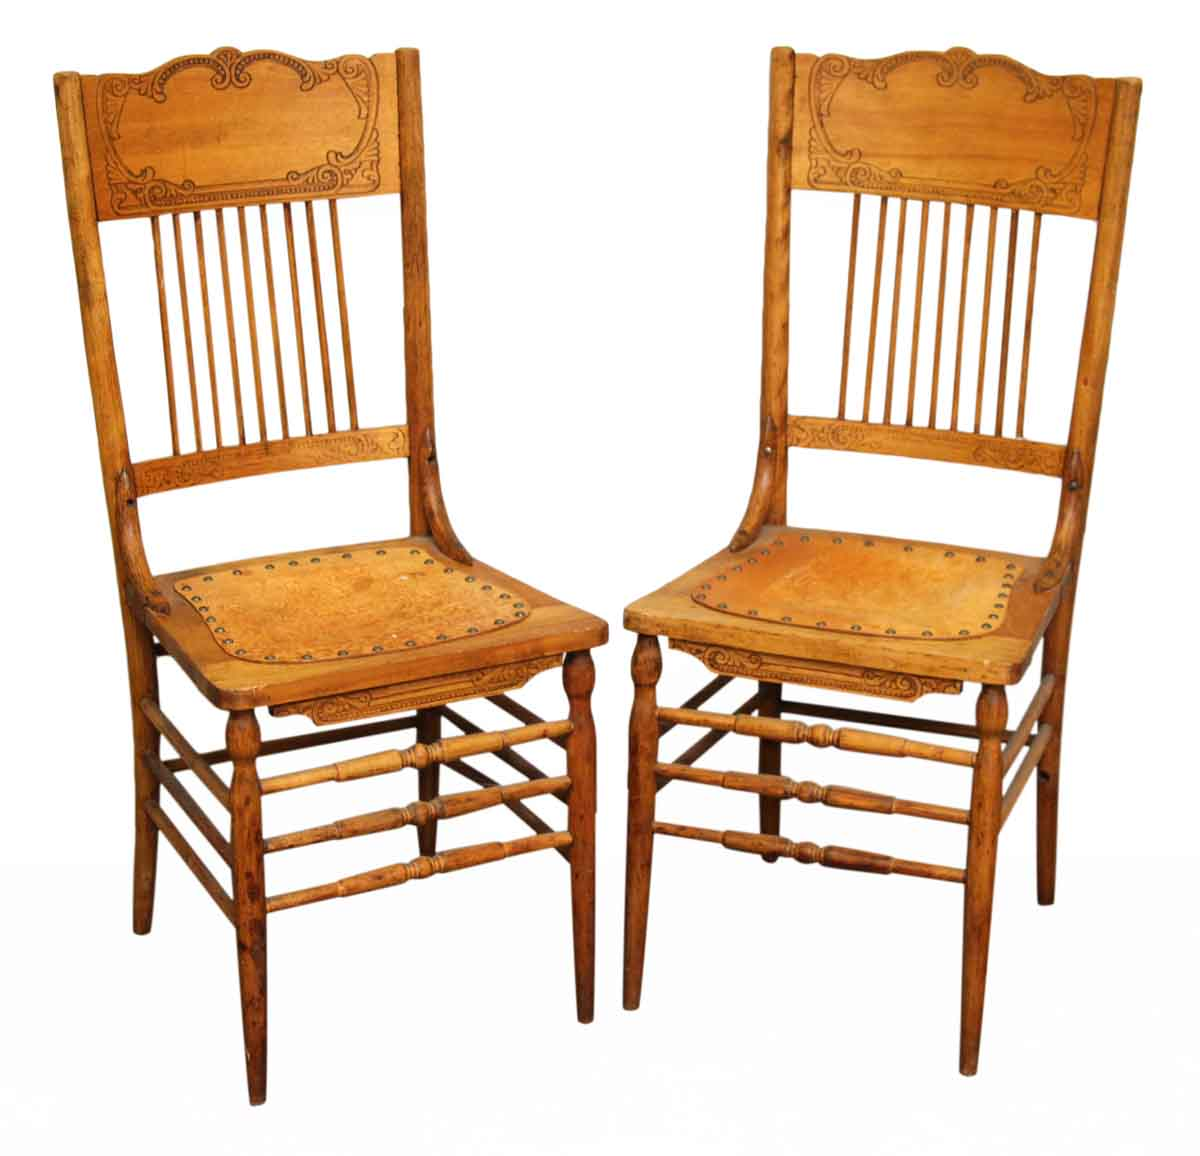 Vintage Wooden Kitchen Chairs: Pair Of Leather & Wood Chairs